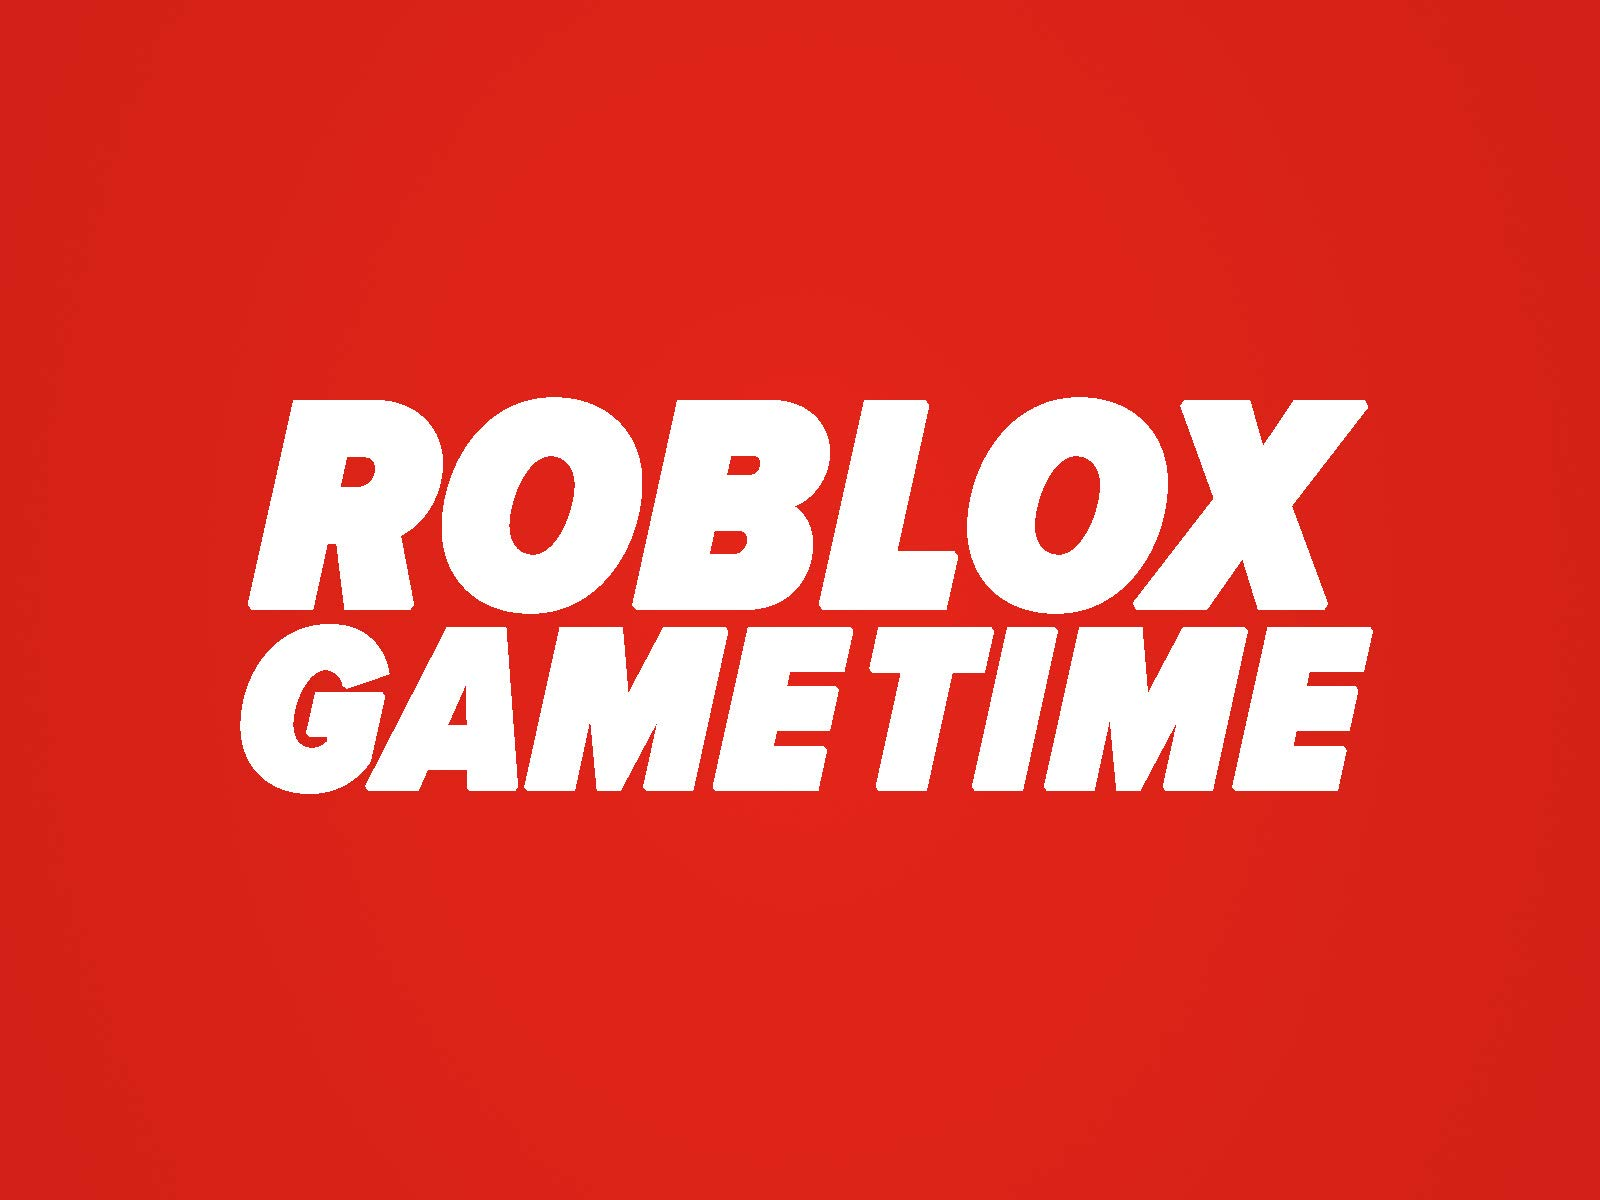 Roblox Live Streaming Now Watch Clip Roblox Game Time Prime Video